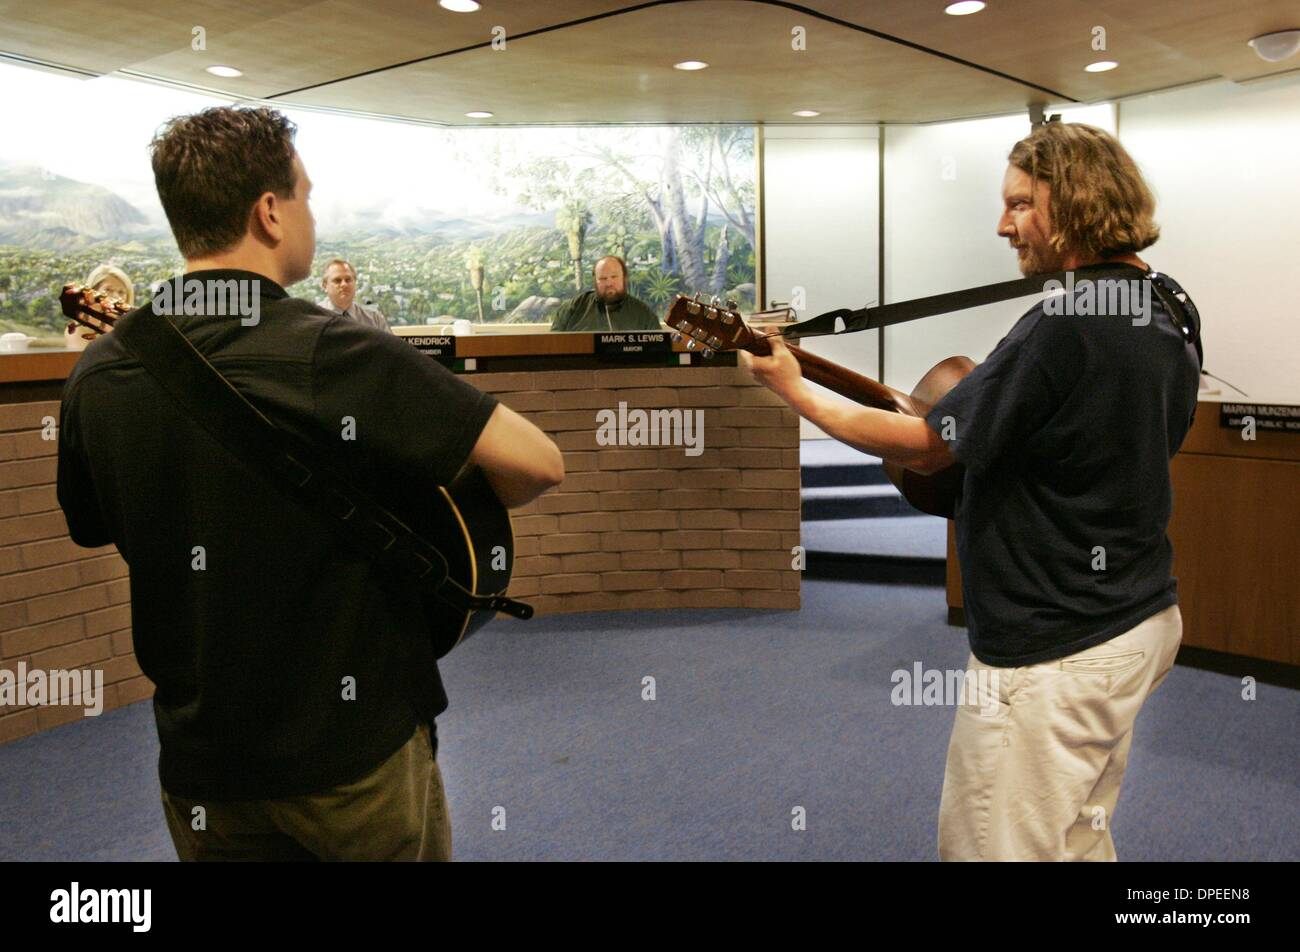 (Republished 1/27/2005, B-6:7)  (Published 1/26/2005, B-1:2)  Wes Elliott (left) and Ravi Laird (right), members of the group ''Tapwater'' serenade the mayor and city council of El Cajon during a session concerning the future of the East County Performing Arts Center in El Cajon.  Earnie Grafton/UT - Stock Image